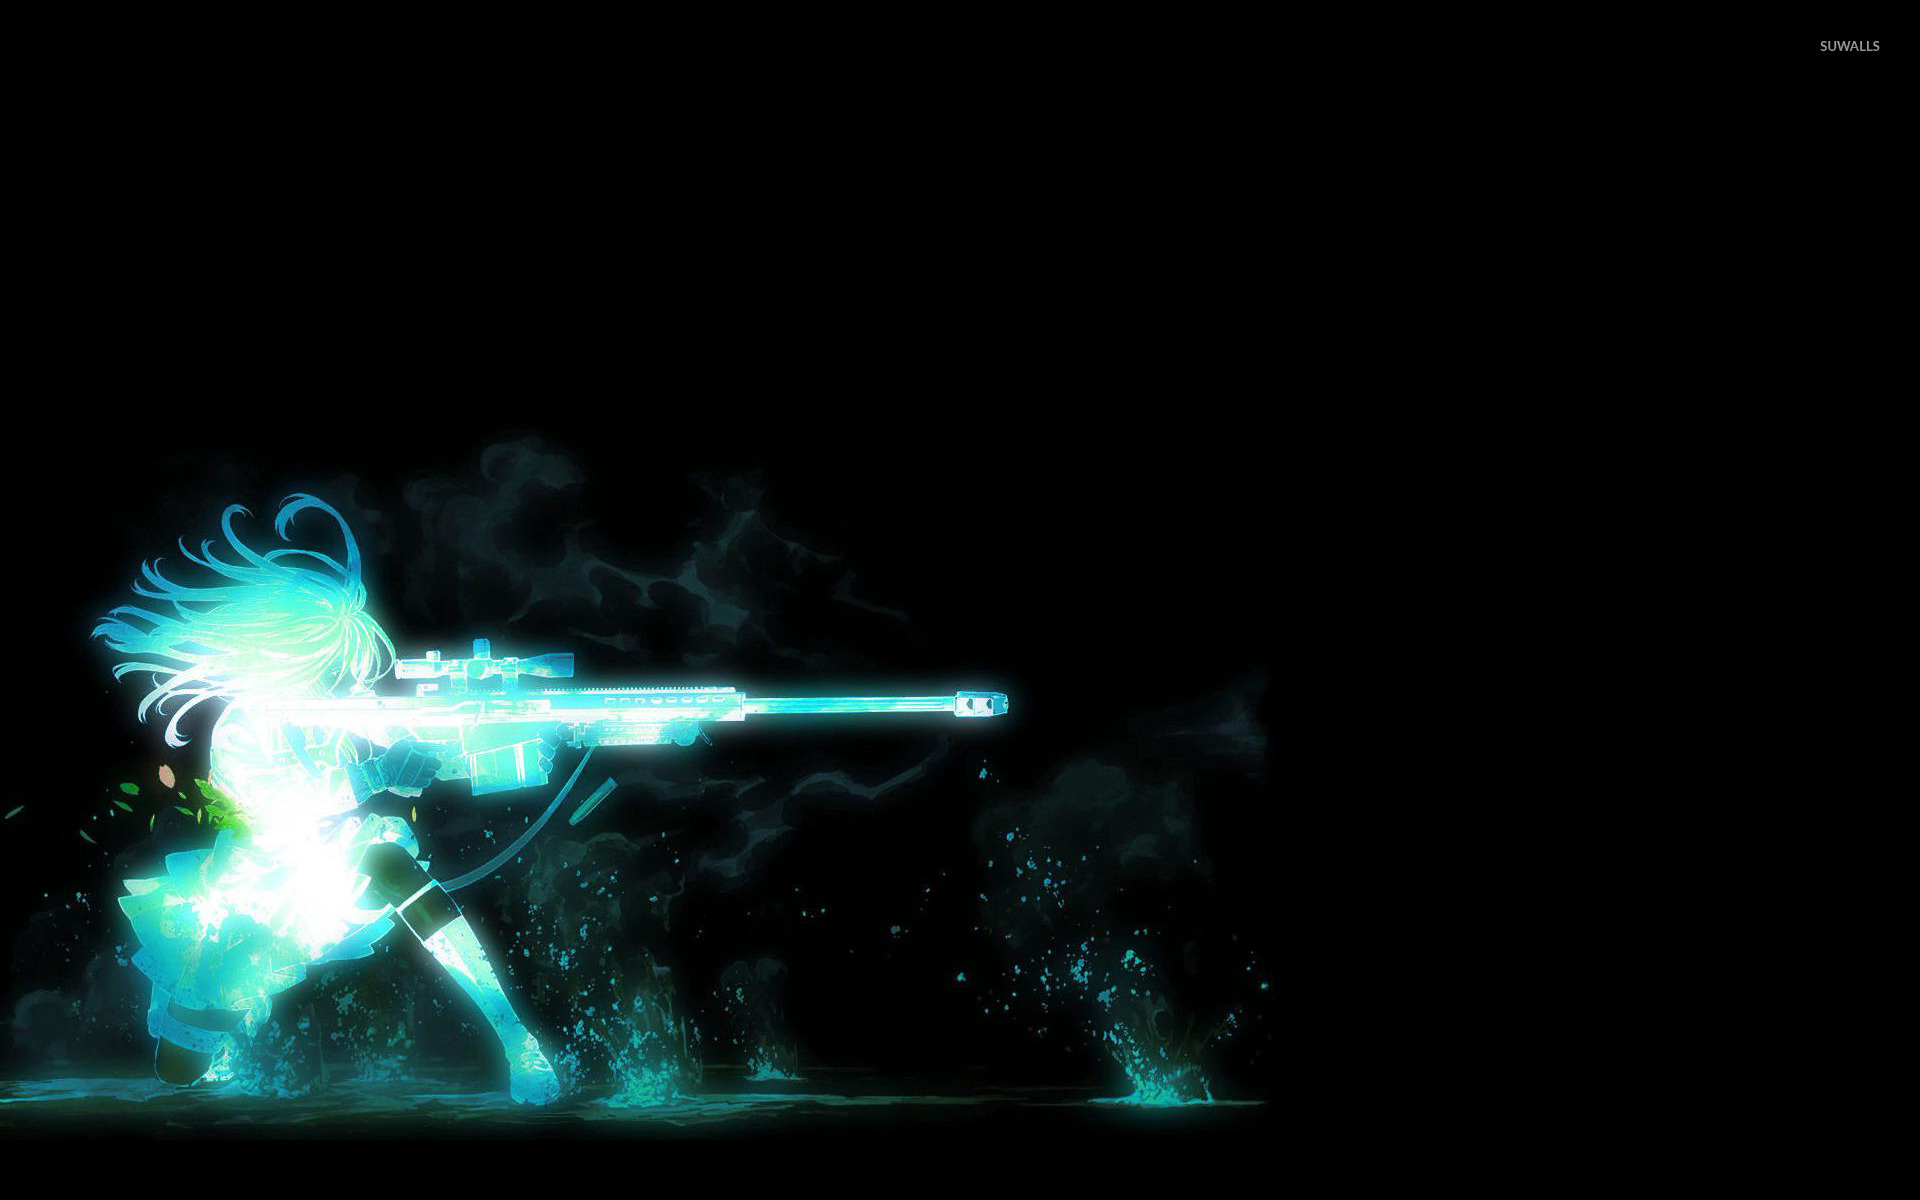 Special Forces Wallpapers Group - Anime Sniper Girl Wallpaper Hd , HD Wallpaper & Backgrounds